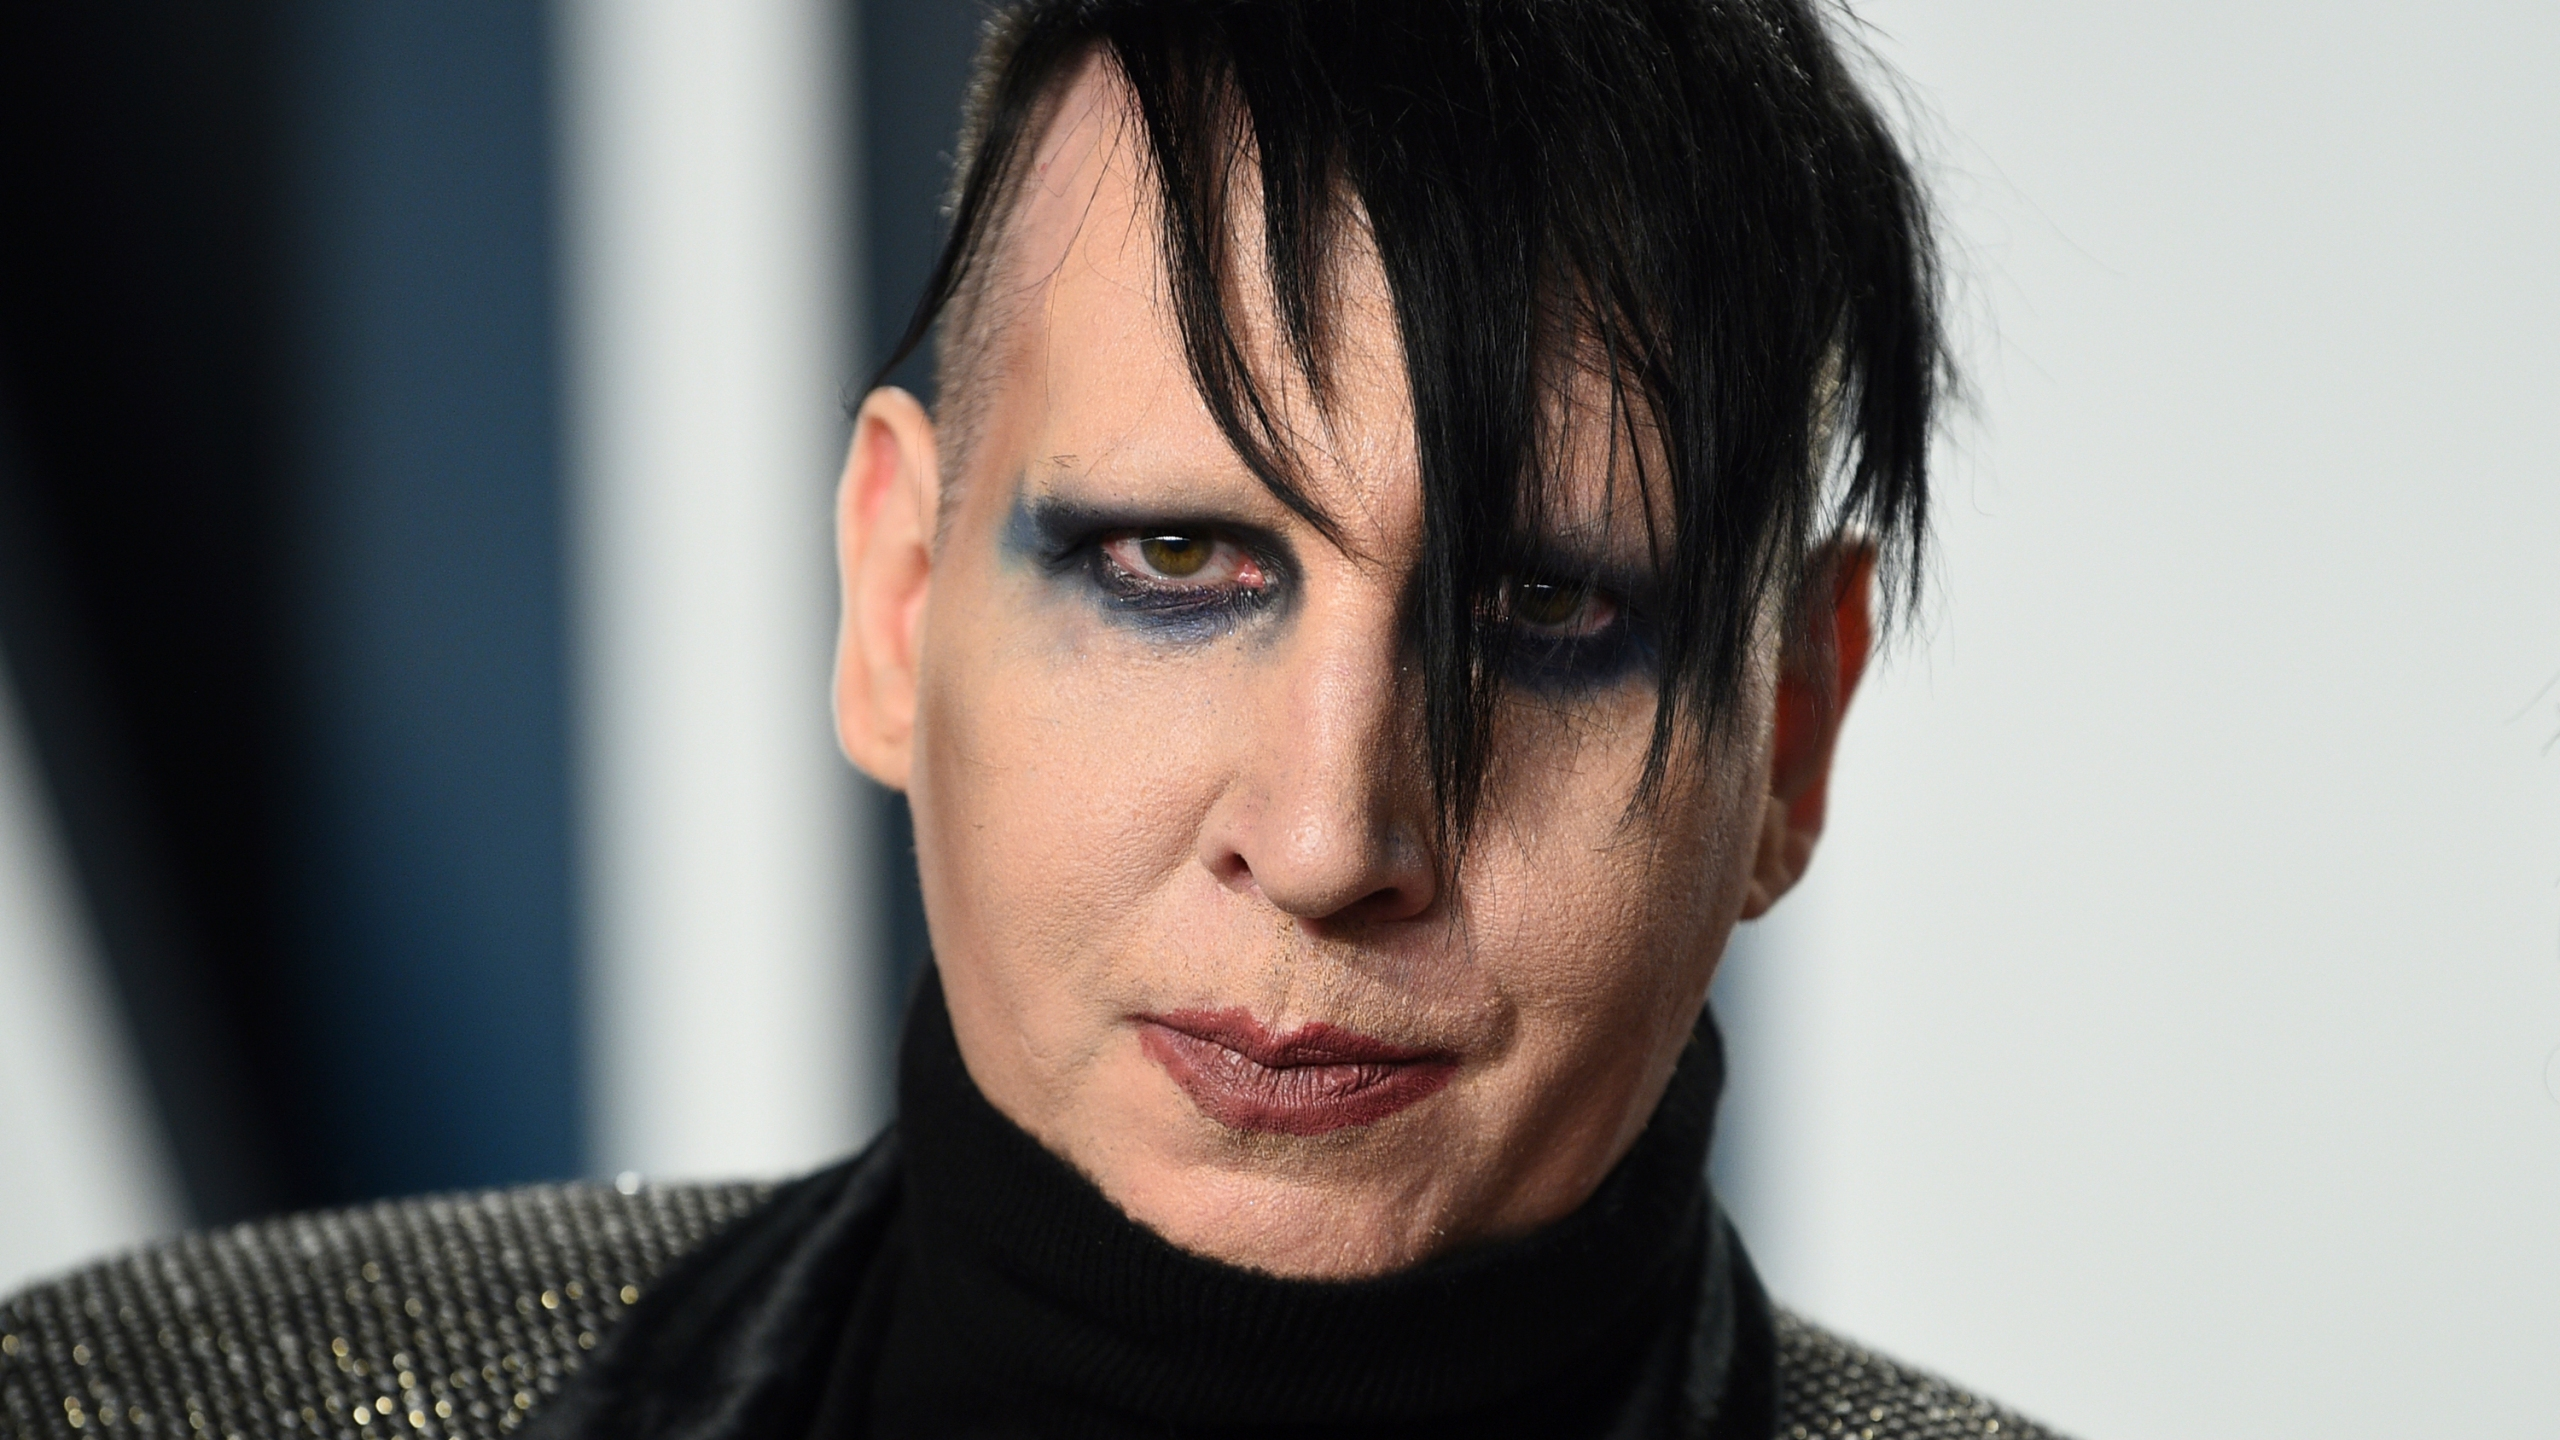 FILE - Marilyn Manson arrives at the Vanity Fair Oscar Party on Feb. 9, 2020, in Beverly Hills, Calif. An attorney has entered a not guilty plea on behalf Manson, who is accused of approaching a videographer at his 2019 concert in New Hampshire and allegedly spitting and blowing snot on her. A case status hearing is scheduled for Dec. 27. (Photo by Evan Agostini/Invision/AP, File)